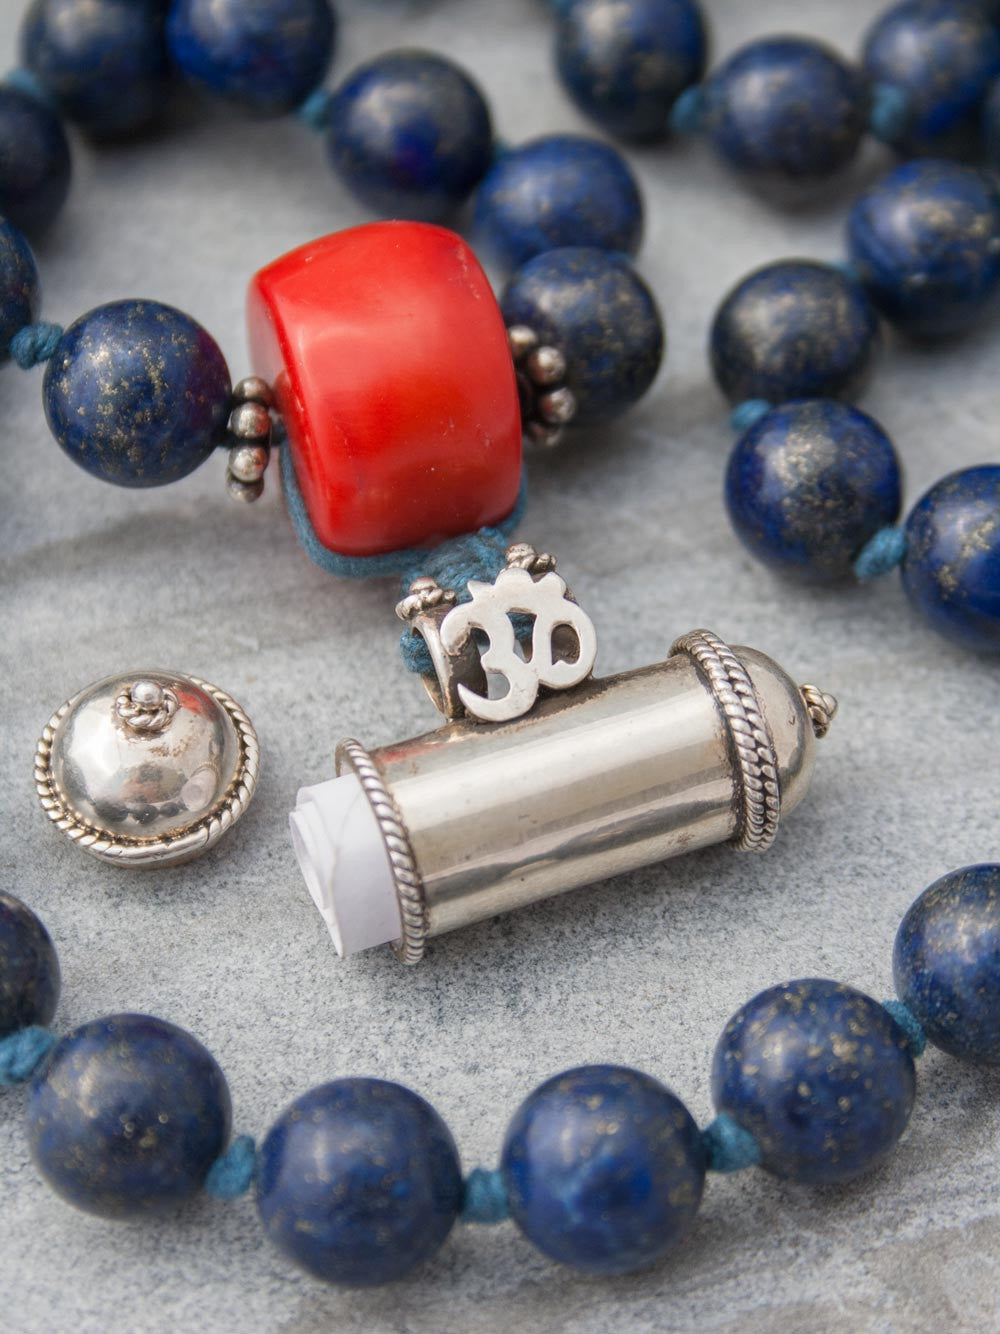 Unstruck Om Mala, for meditation and awareness, in 12mm Lapis Lazuli, has a stunning coral Guru bead and silver Mantra talisman: open talisman view.